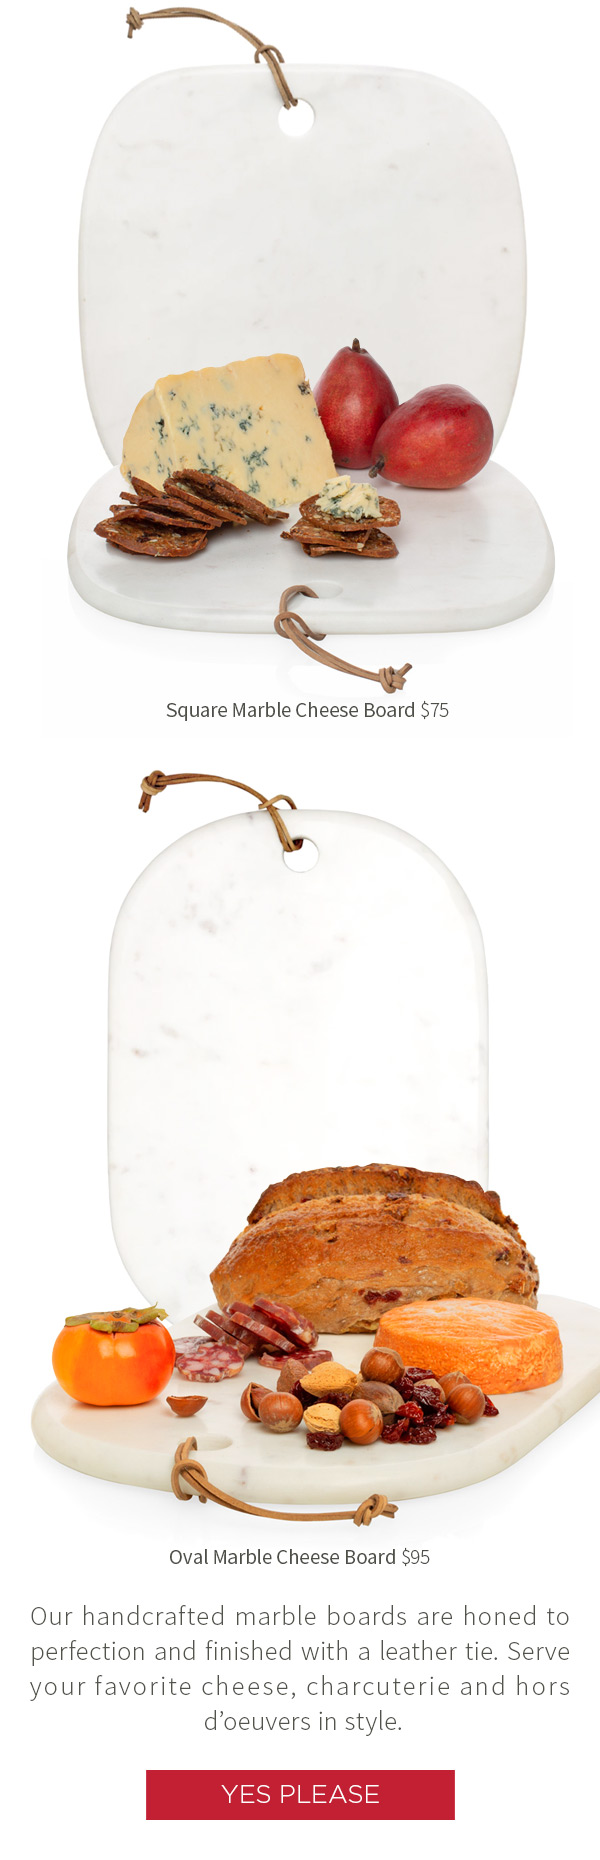 Oval Marble Cheese Board $95 .?Small Round Marble Cheese Board $58 .?Square Marble Cheese Board $75